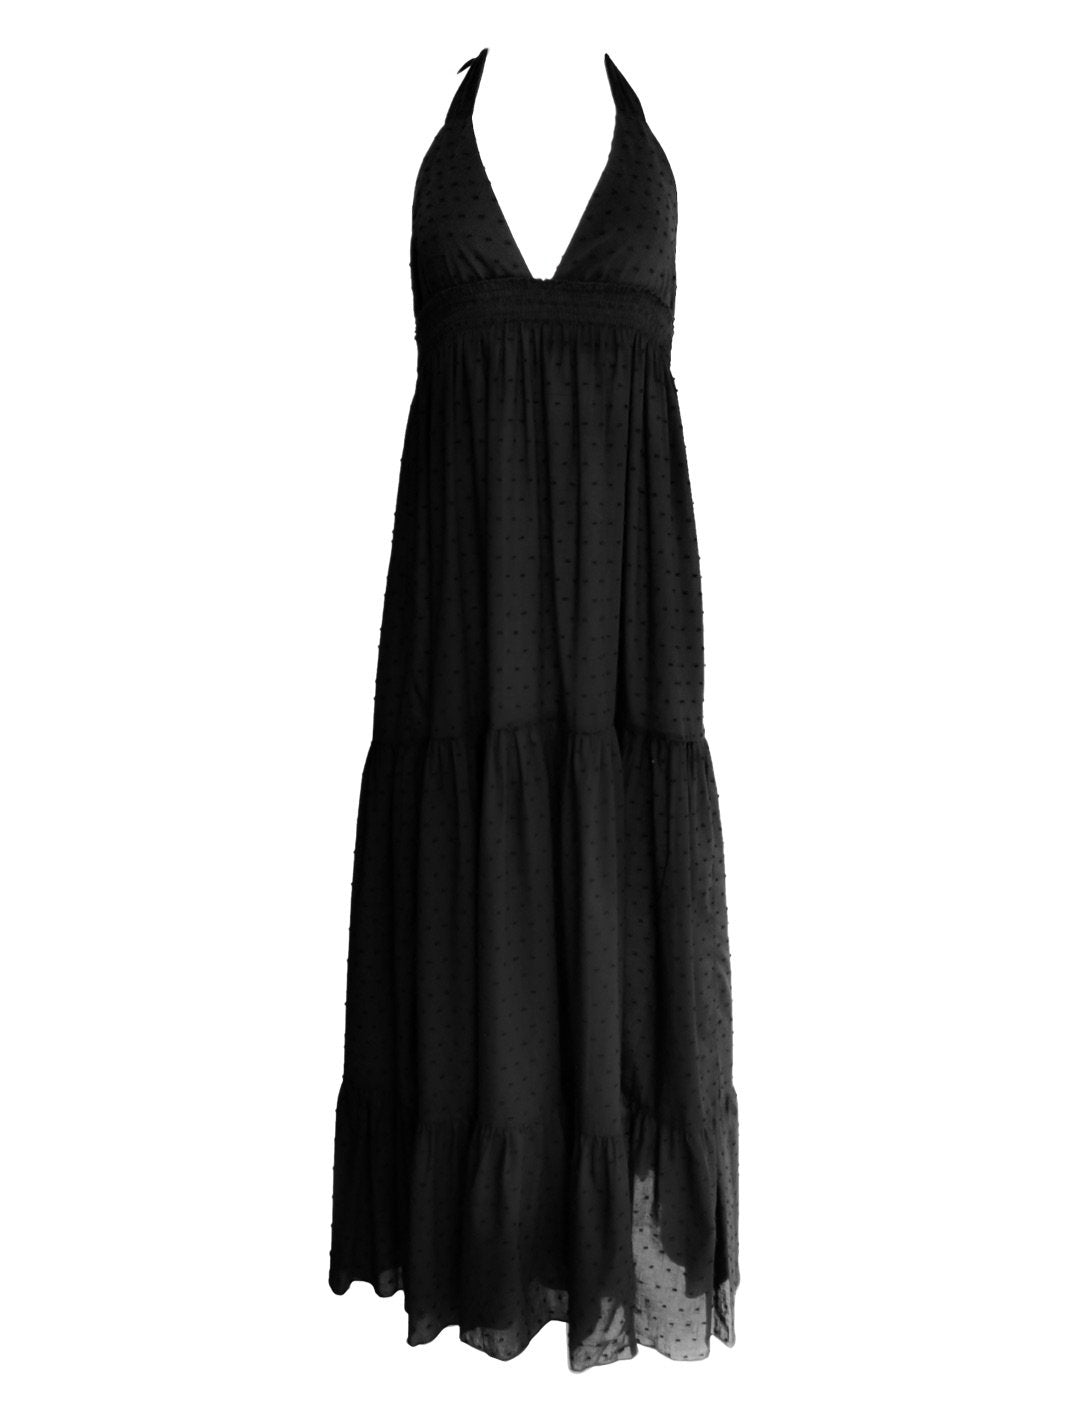 Plumeti Cotton Maxi Halter dress - The Bobby Boga